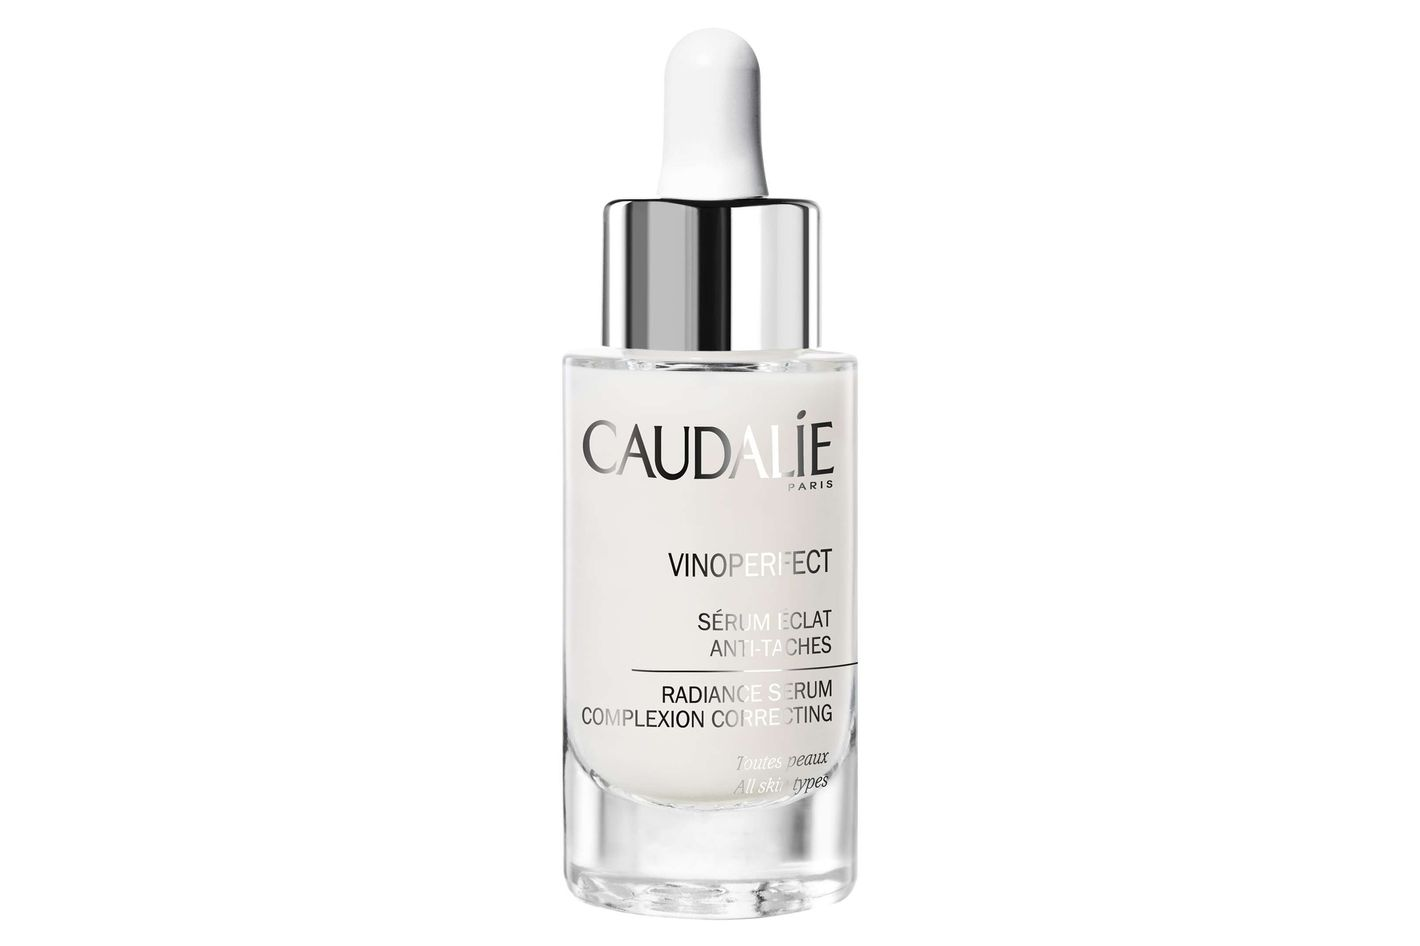 Caudalíe Vinoperfect Radiance Serum